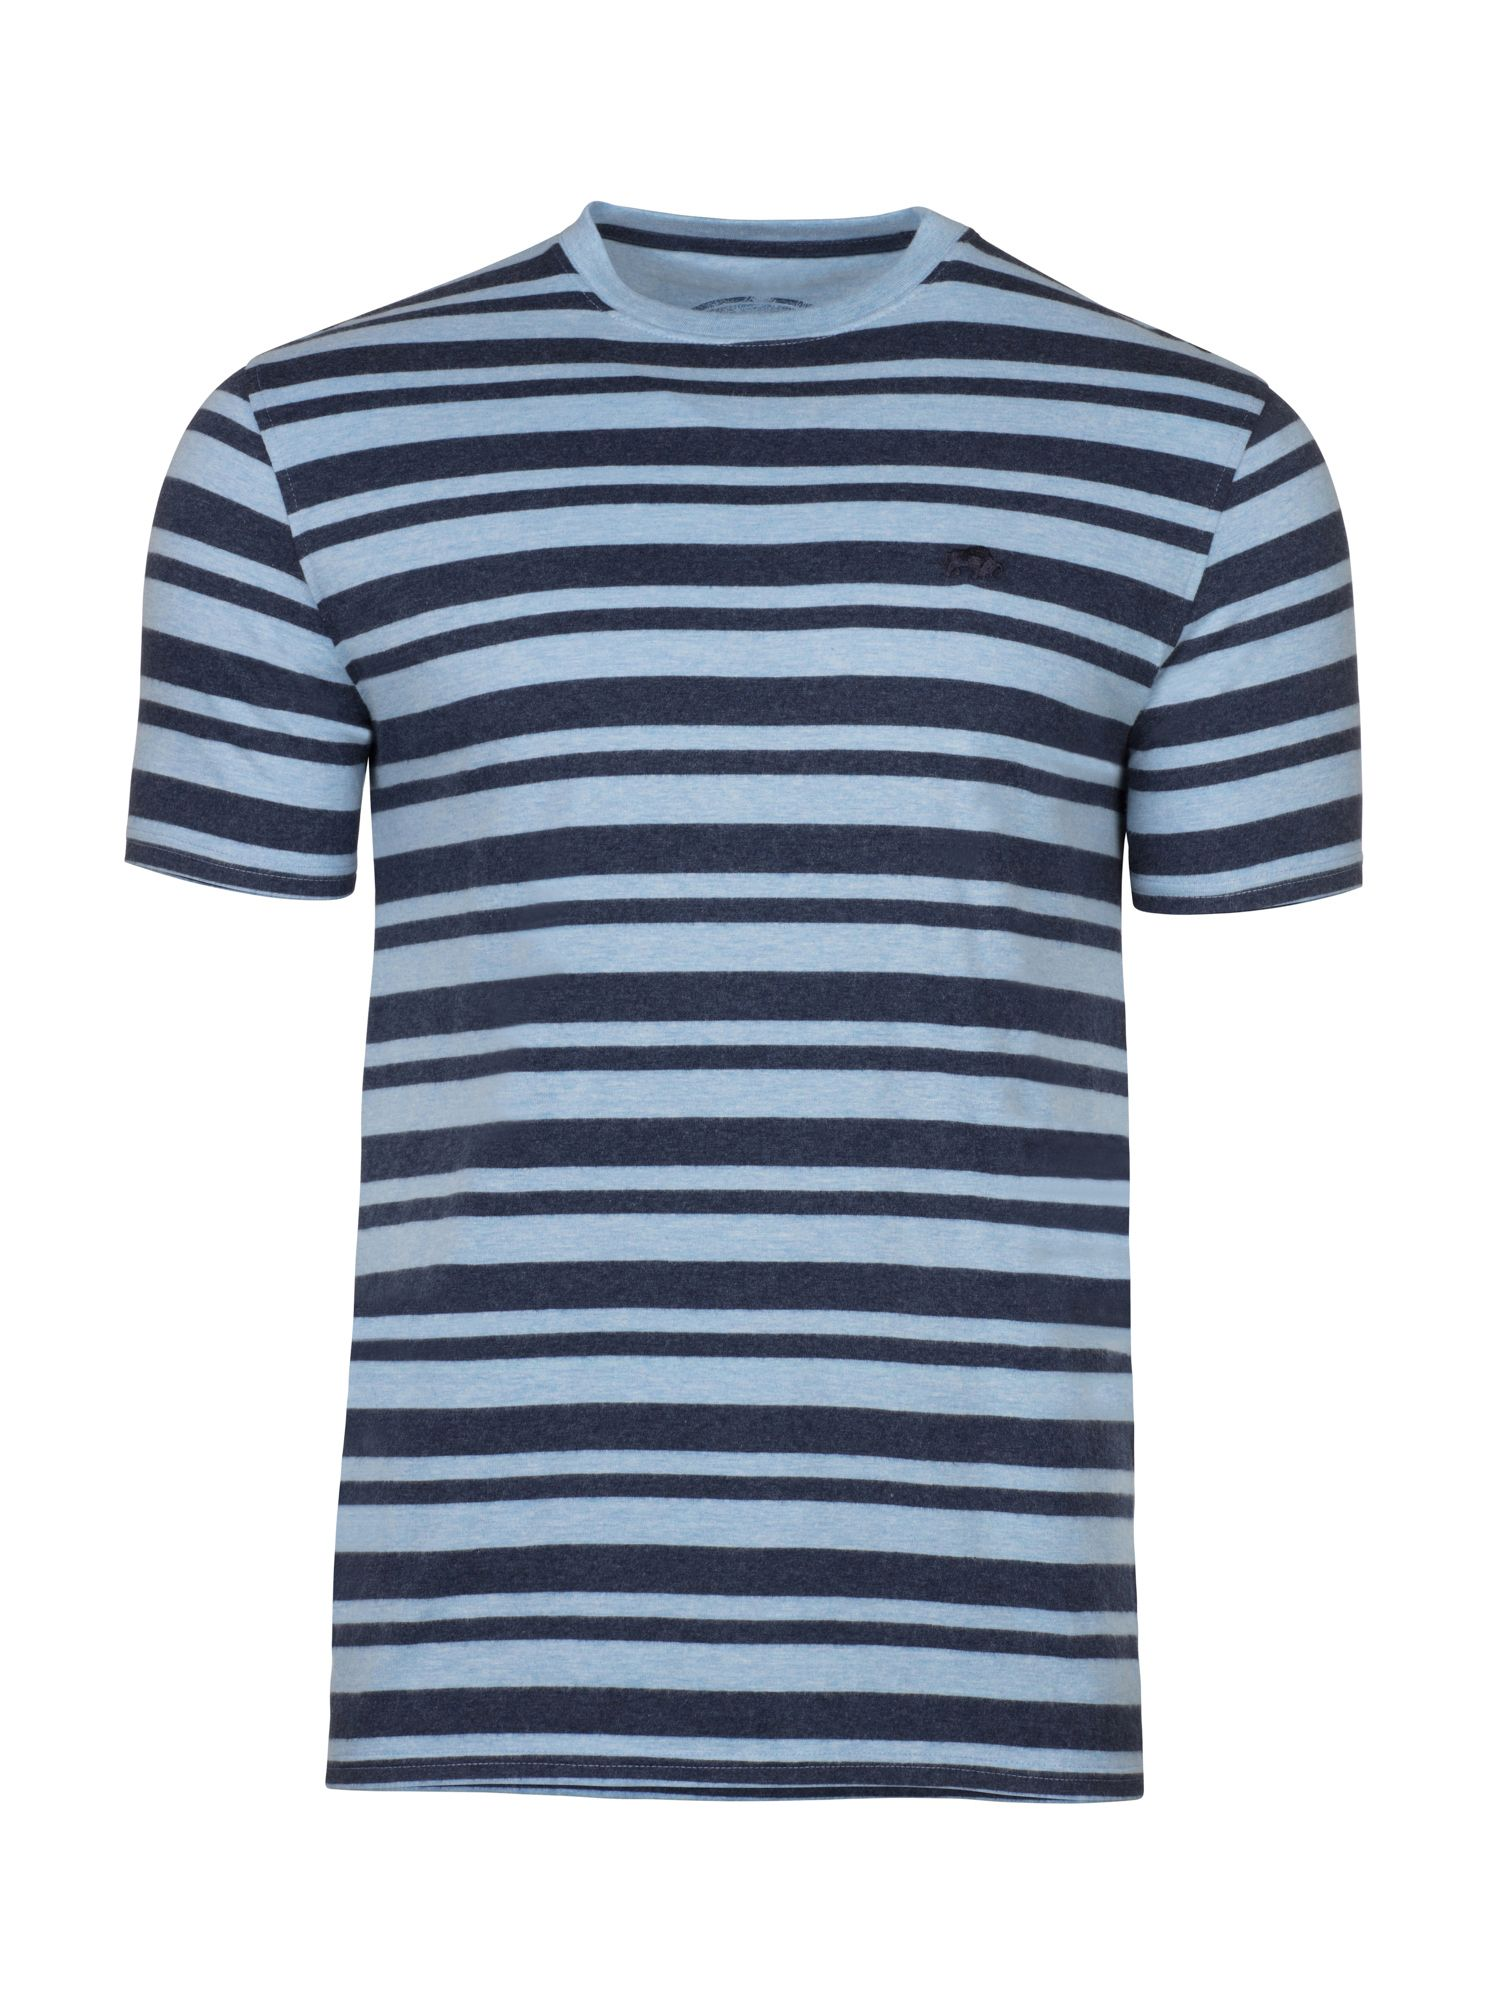 Men's Raging Bull Big & Tall Marl Stripe Tee, Sky Blue